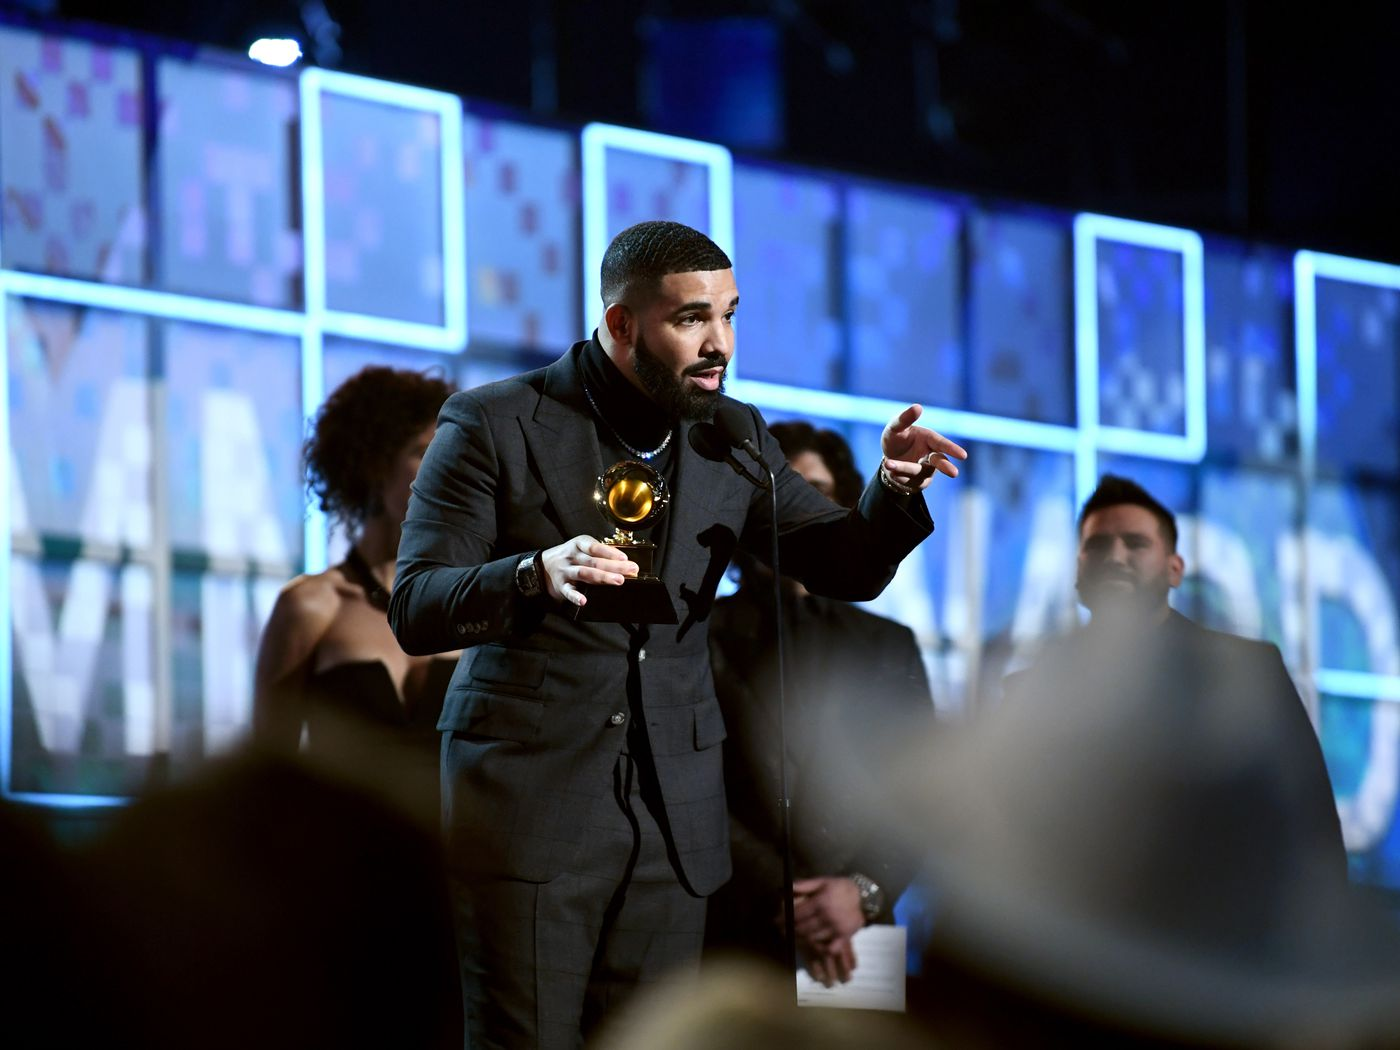 2019 Grammys: the complete list of winners - The Verge